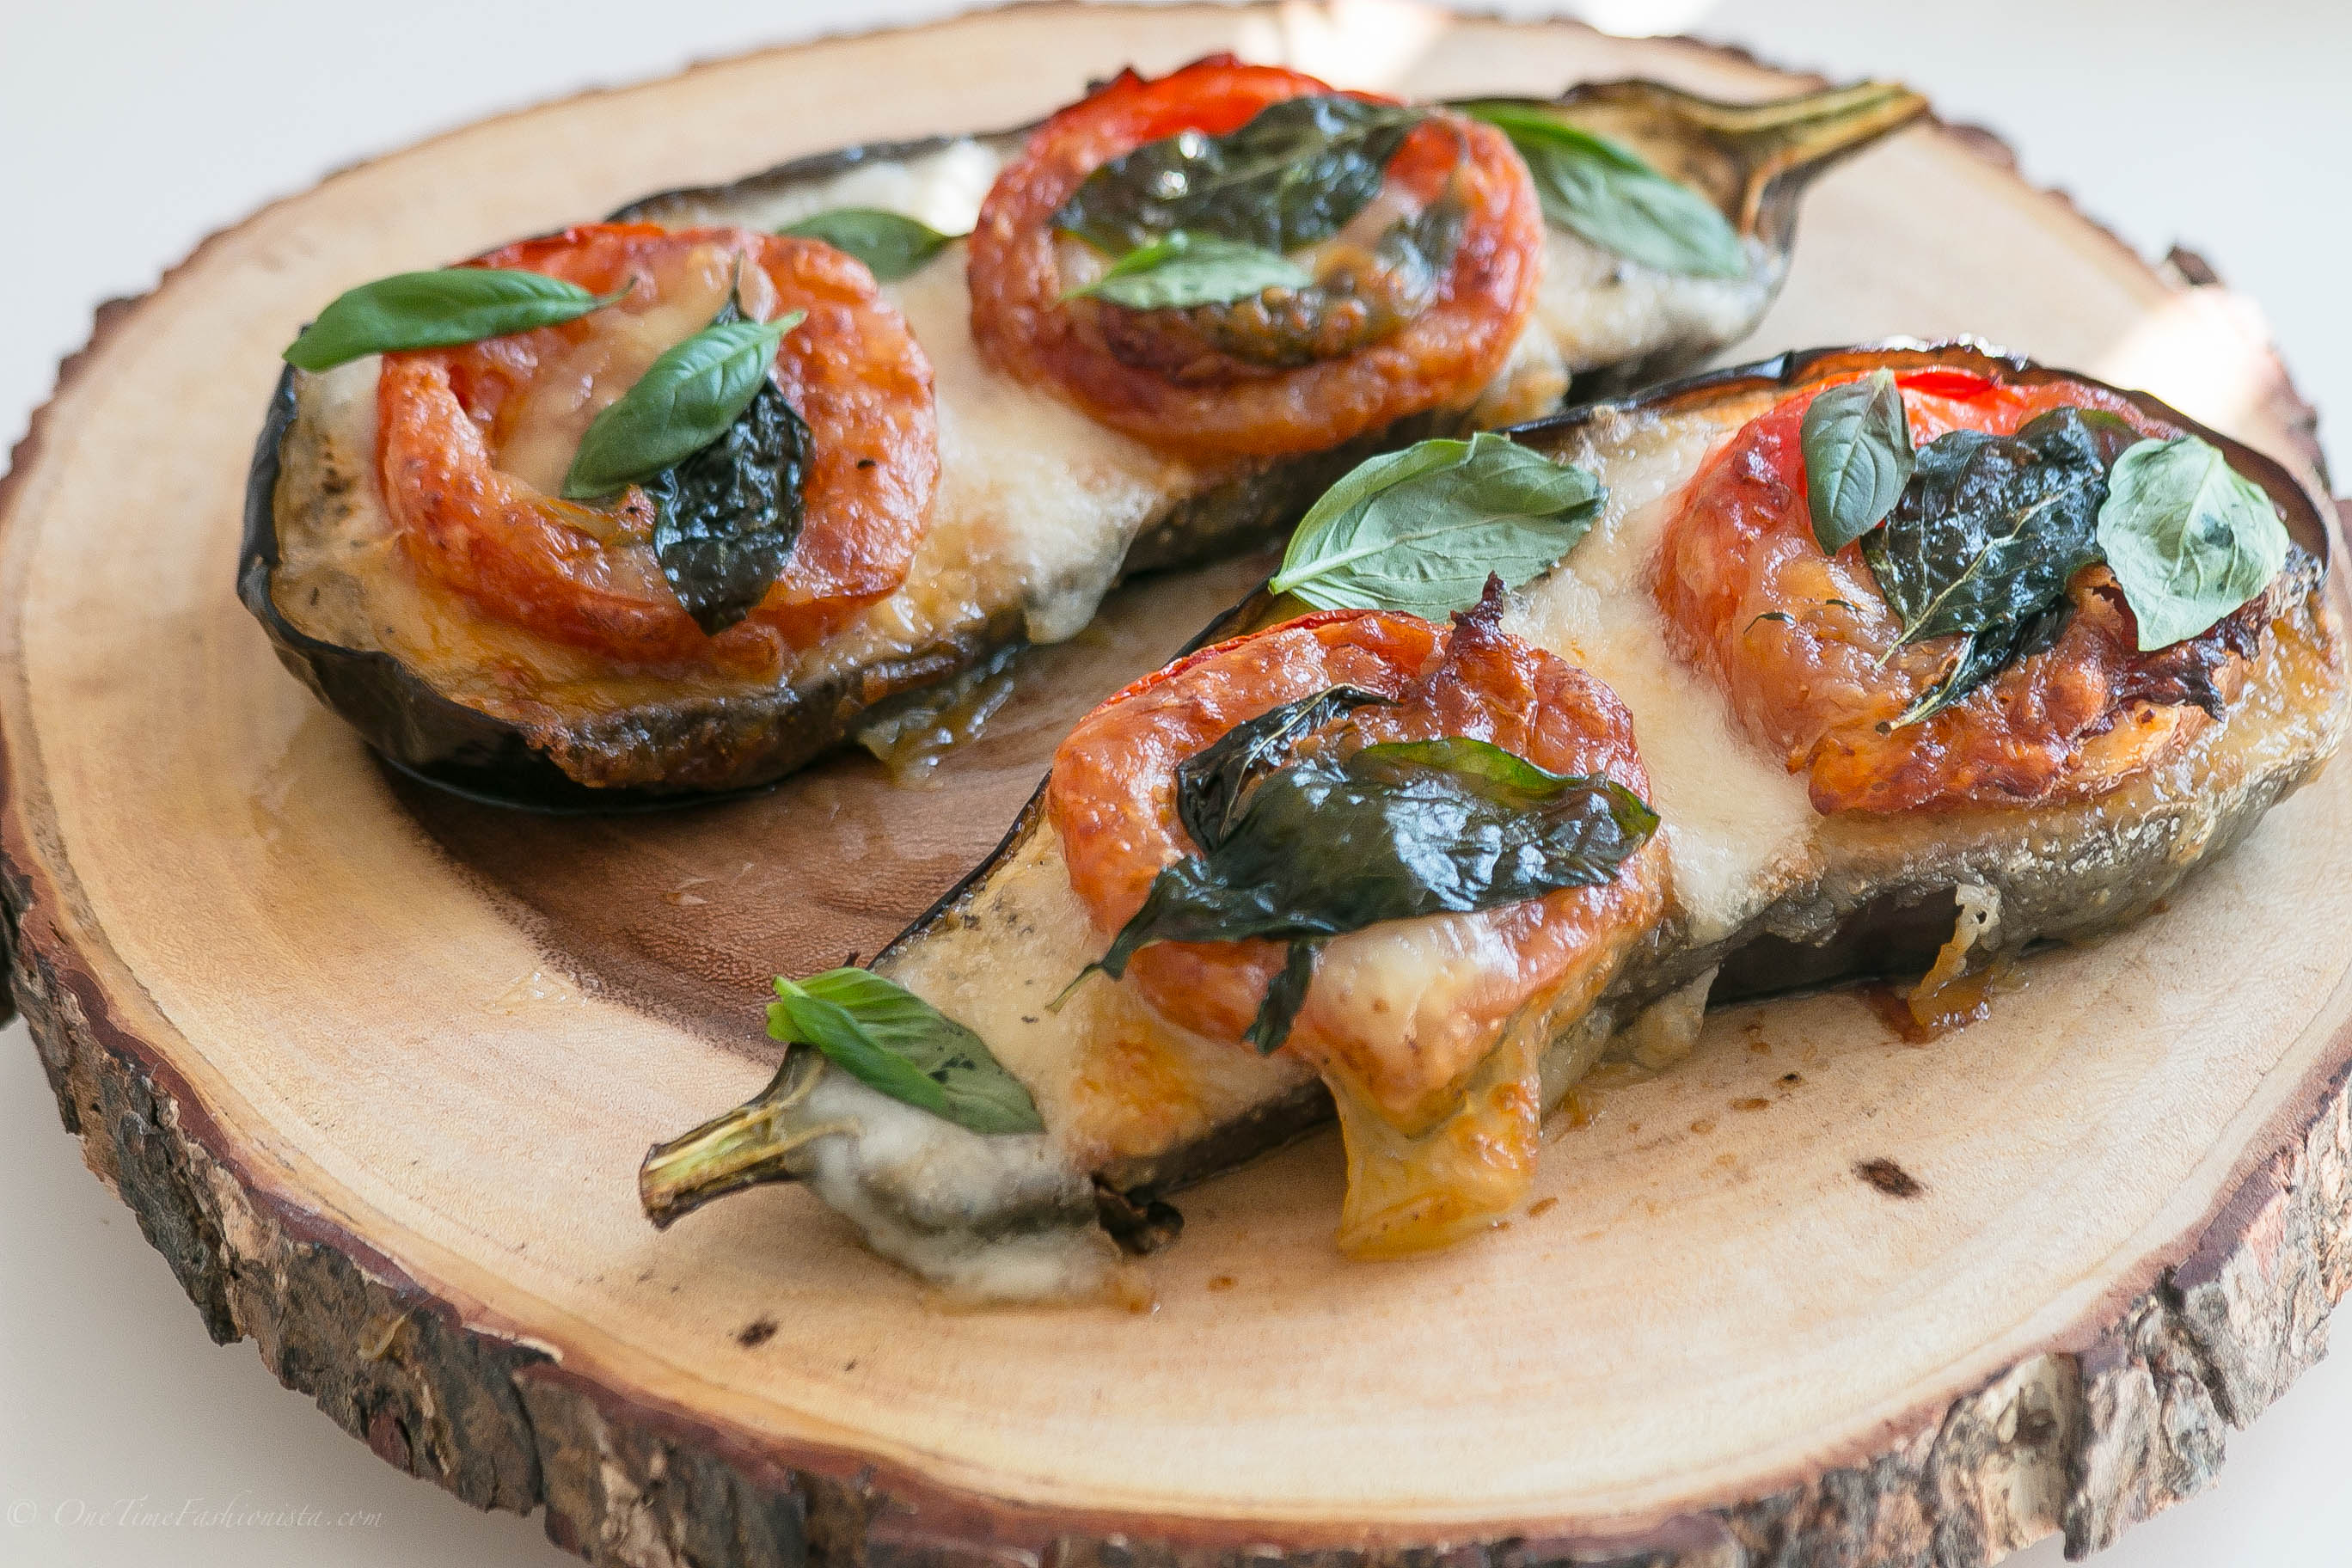 Aubergine Melts: An Uber Tasty Vegetarian Delight